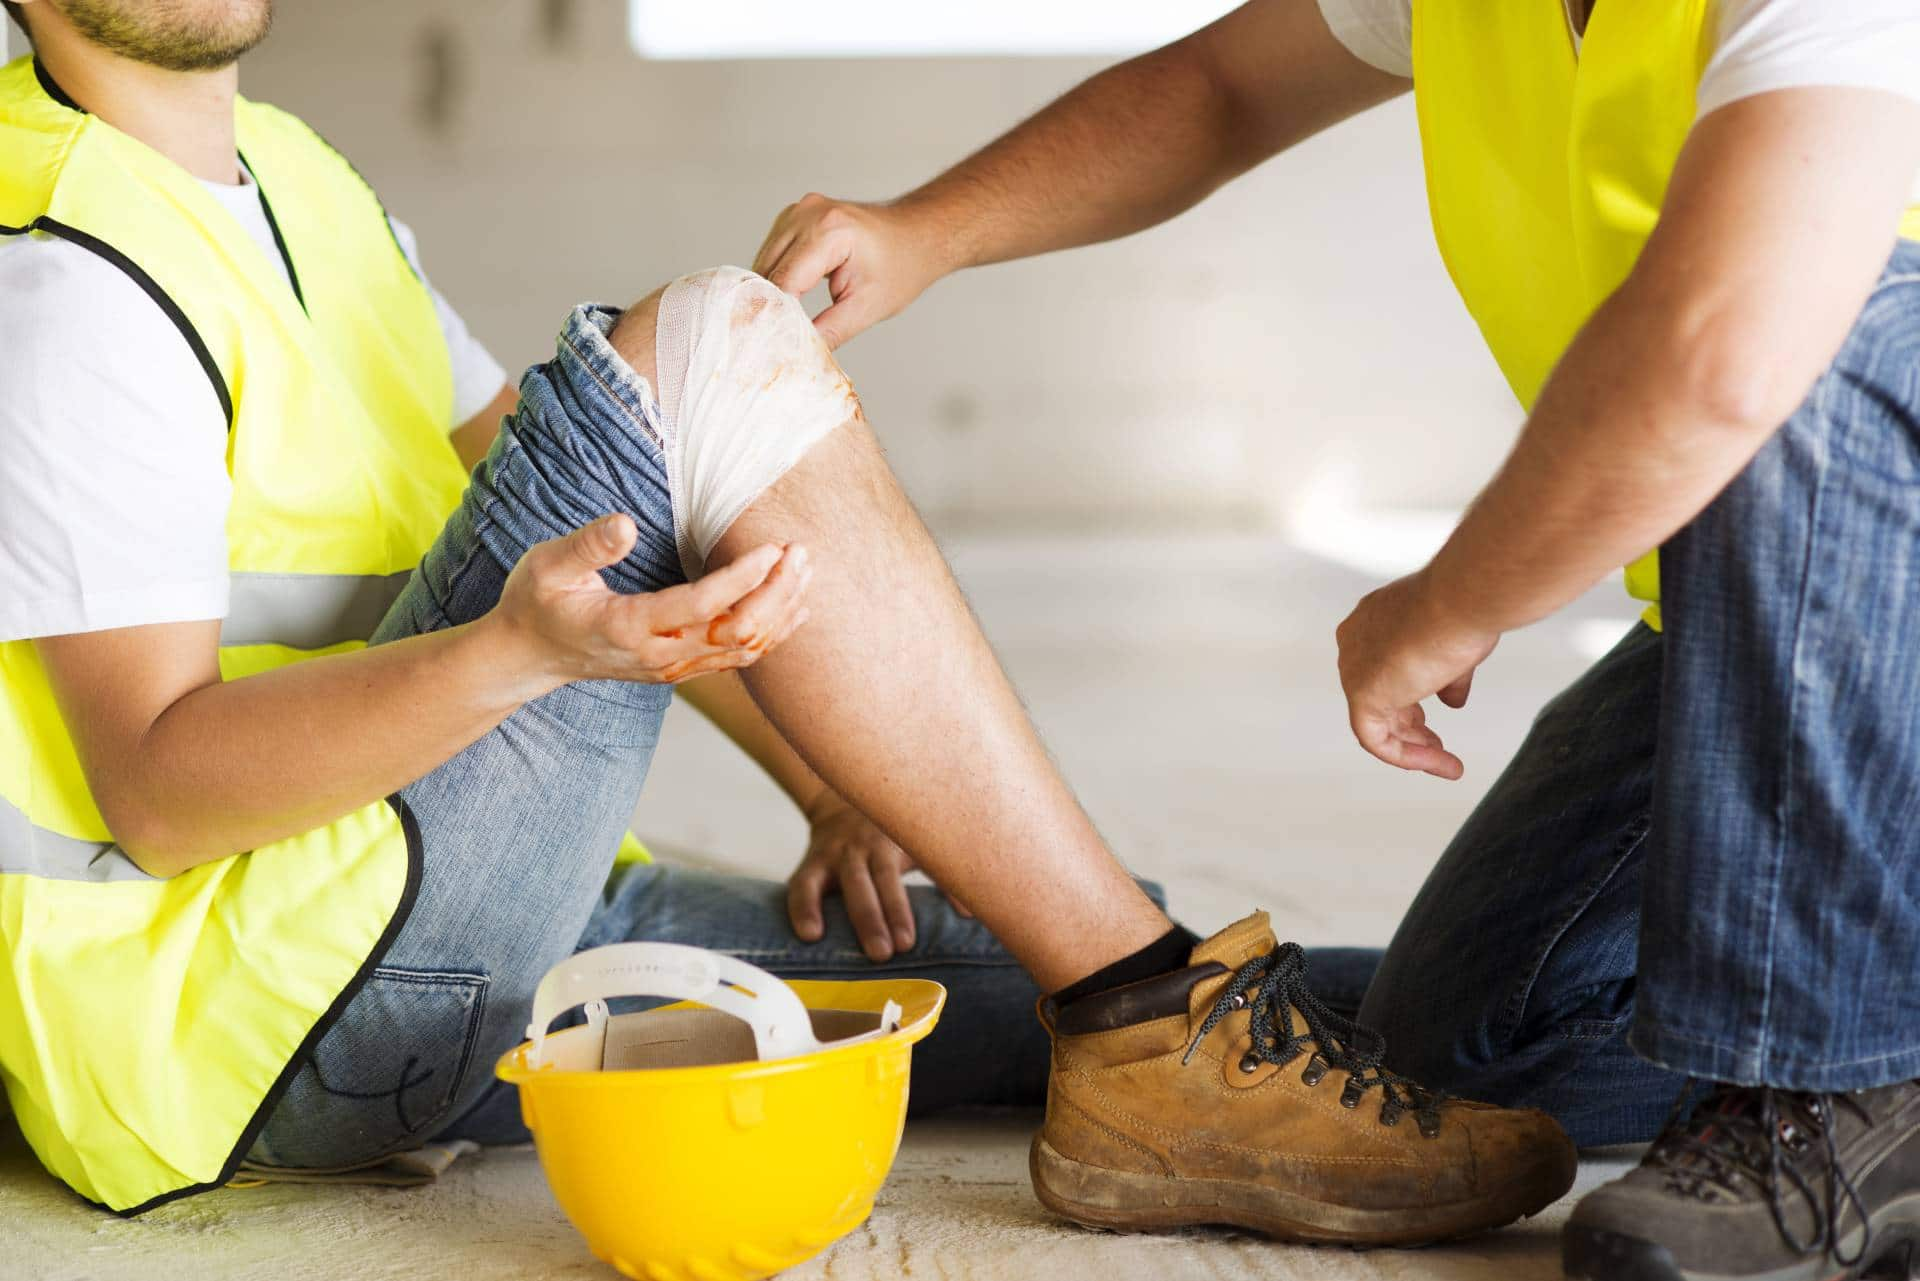 Injured on the job? Schedule a free consultation with a personal injury lawyer at the Angell Firm in Forest Park, GA